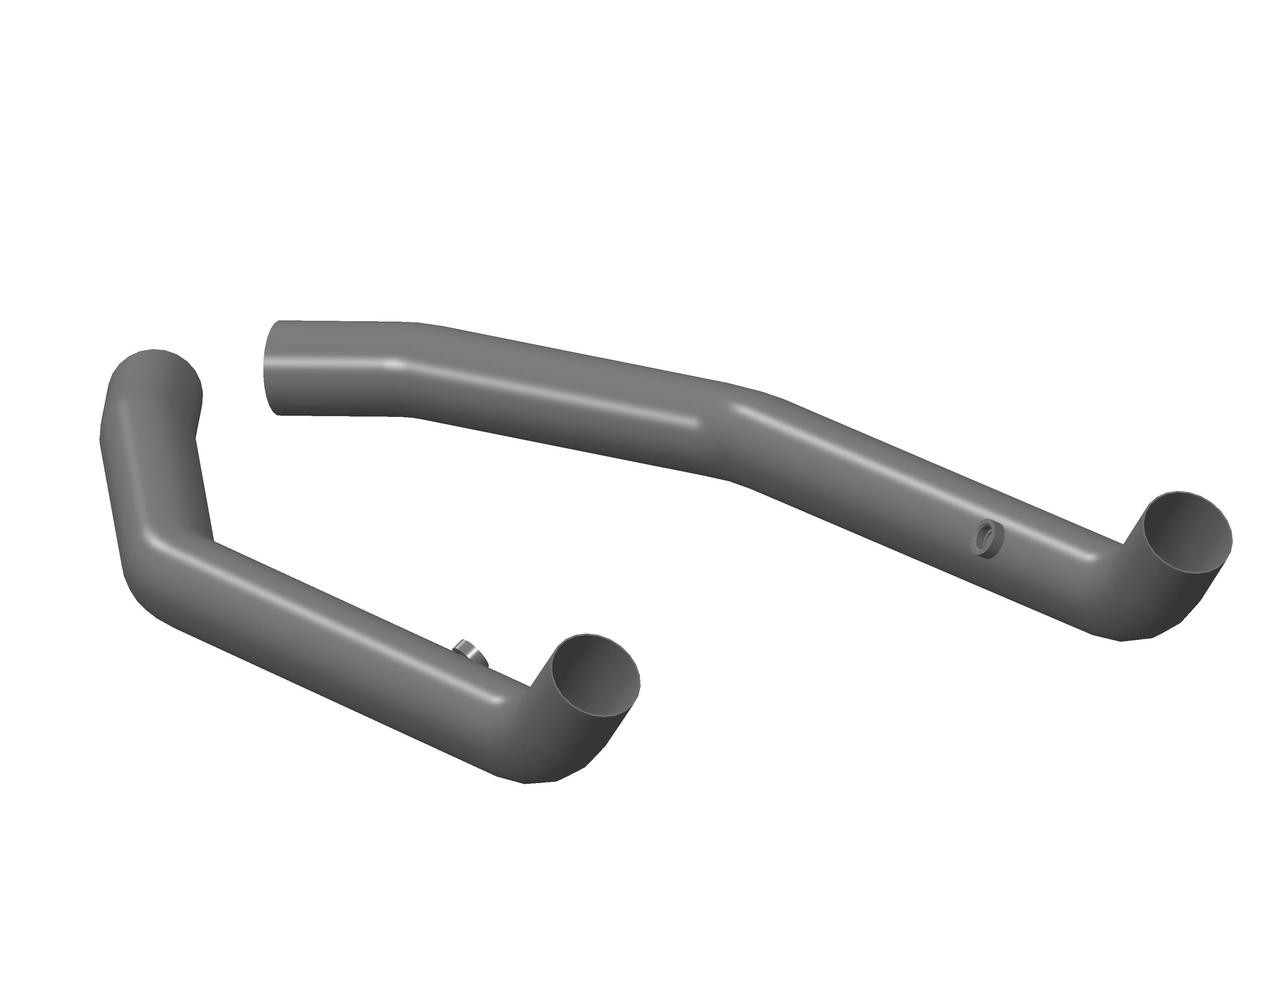 """hooker adapter pipe, 3"""" mid-pipe adapter kit fits long-tube headers"""